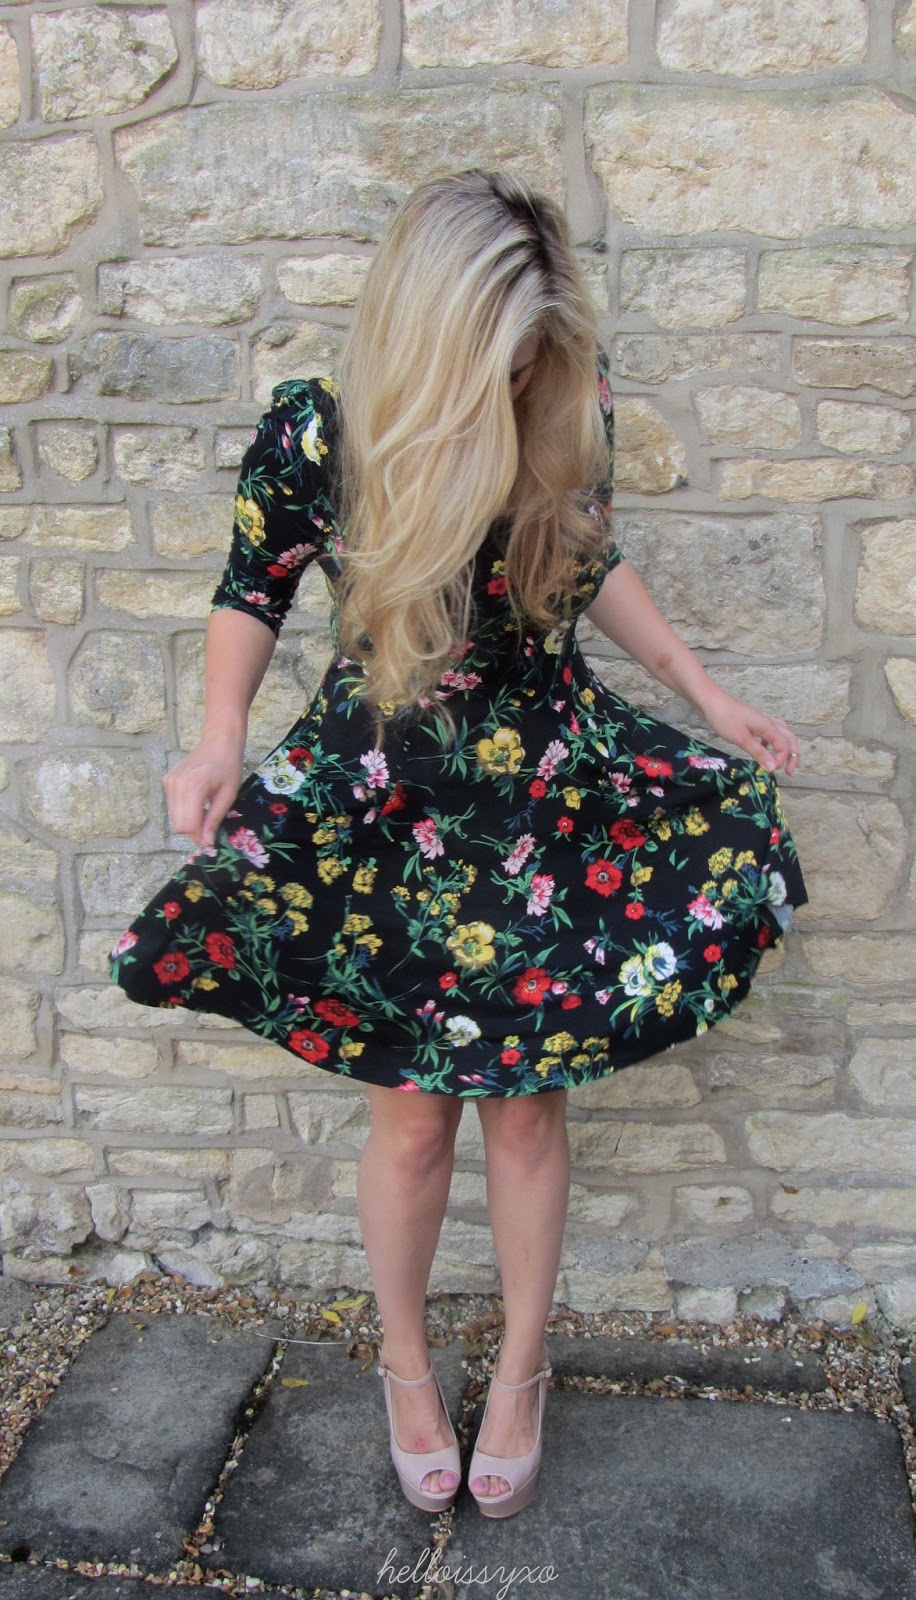 ASOS floral skater dress for my birthday celebrations